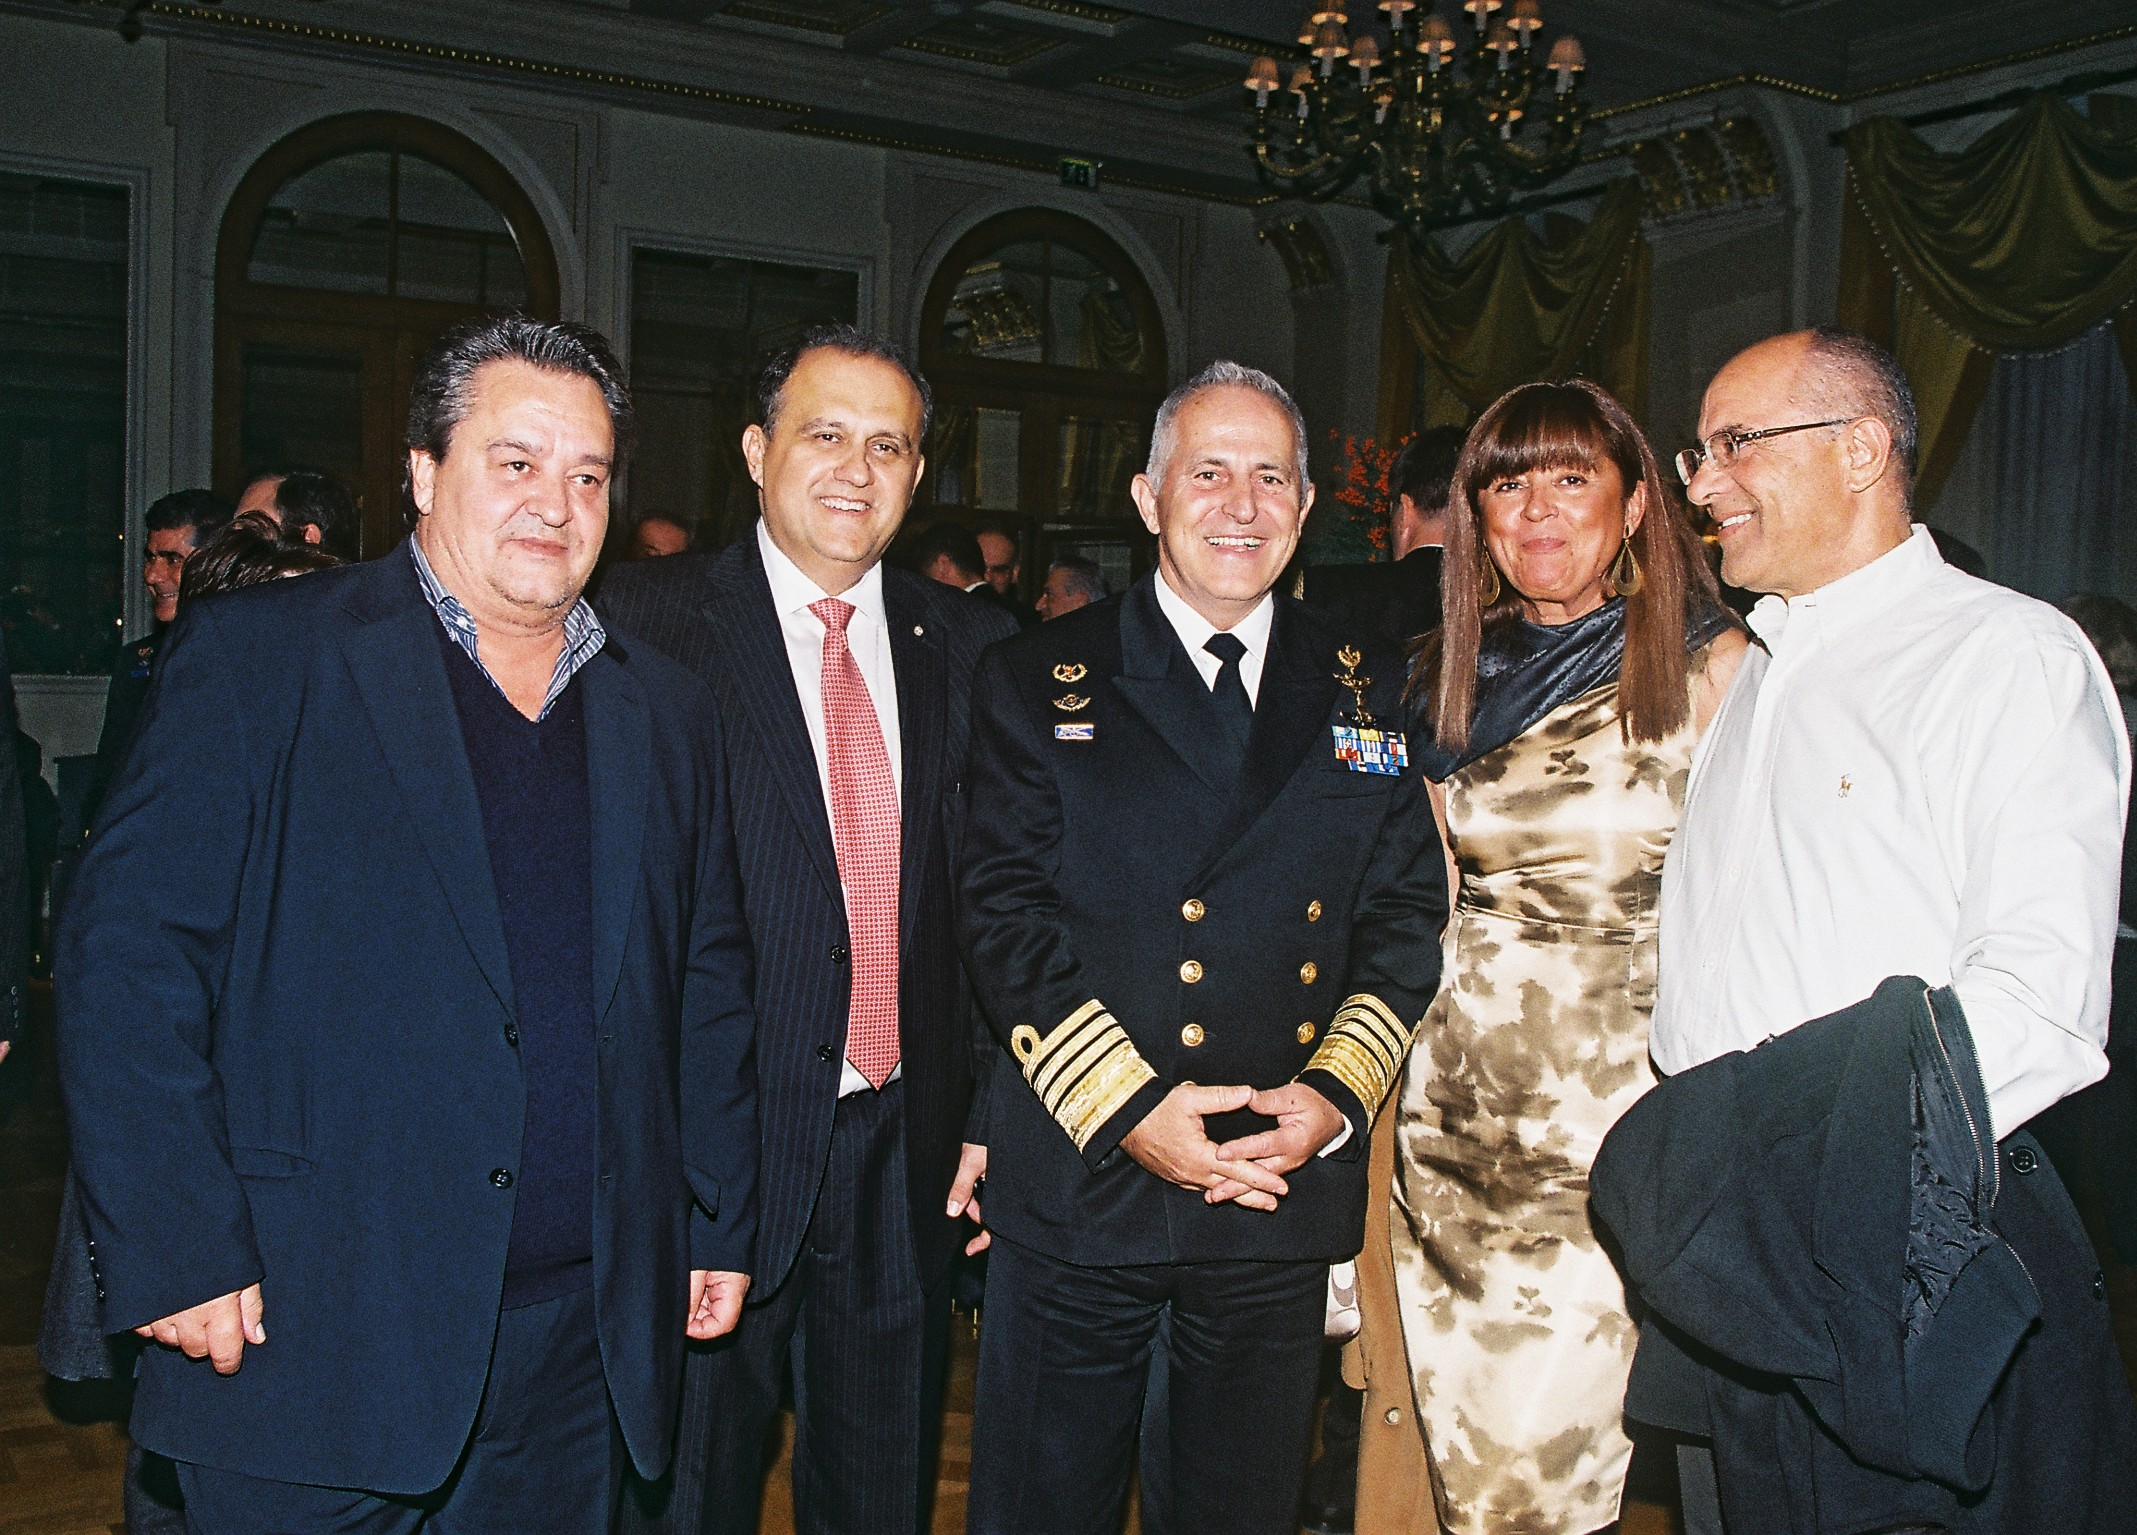 (L-R) Jim Larigakis; Nick Larigakis, President of AHI; Admiral Evangelos Apostolakis, Chief of the Hellenic National Defence General Staff; Theodora Diomis; Dimitri Diomis.